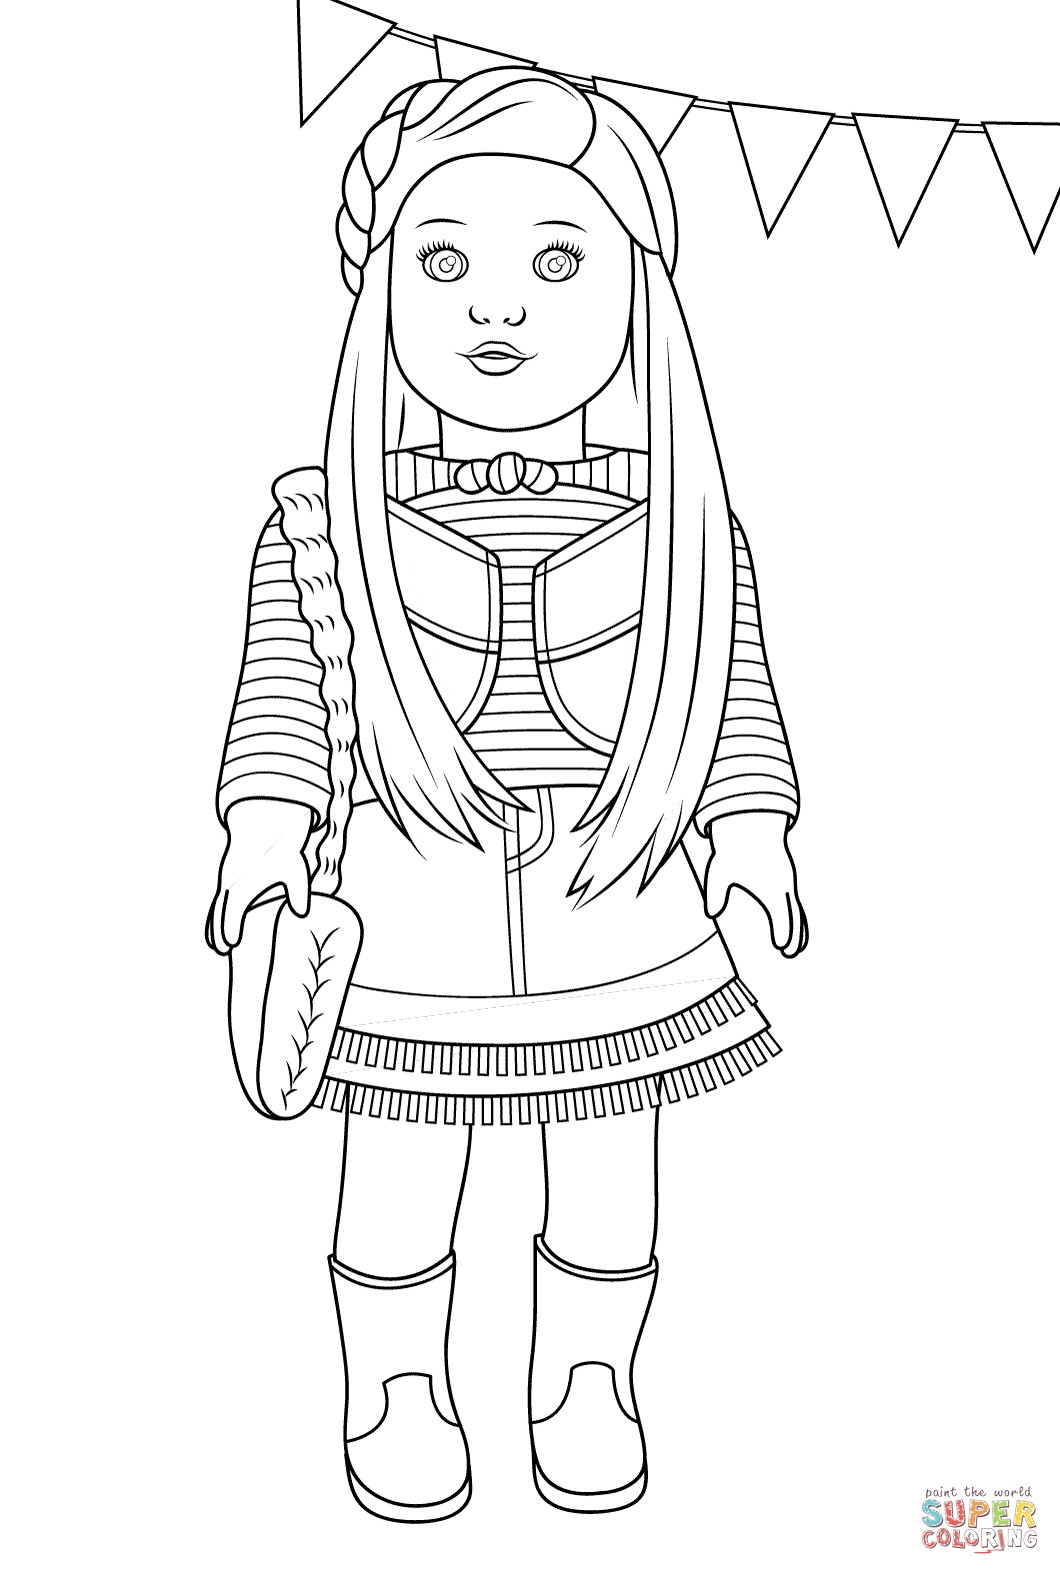 Coloring Pages For Girls That You Can Print  Free Printable American Girl Doll Coloring Pages Free